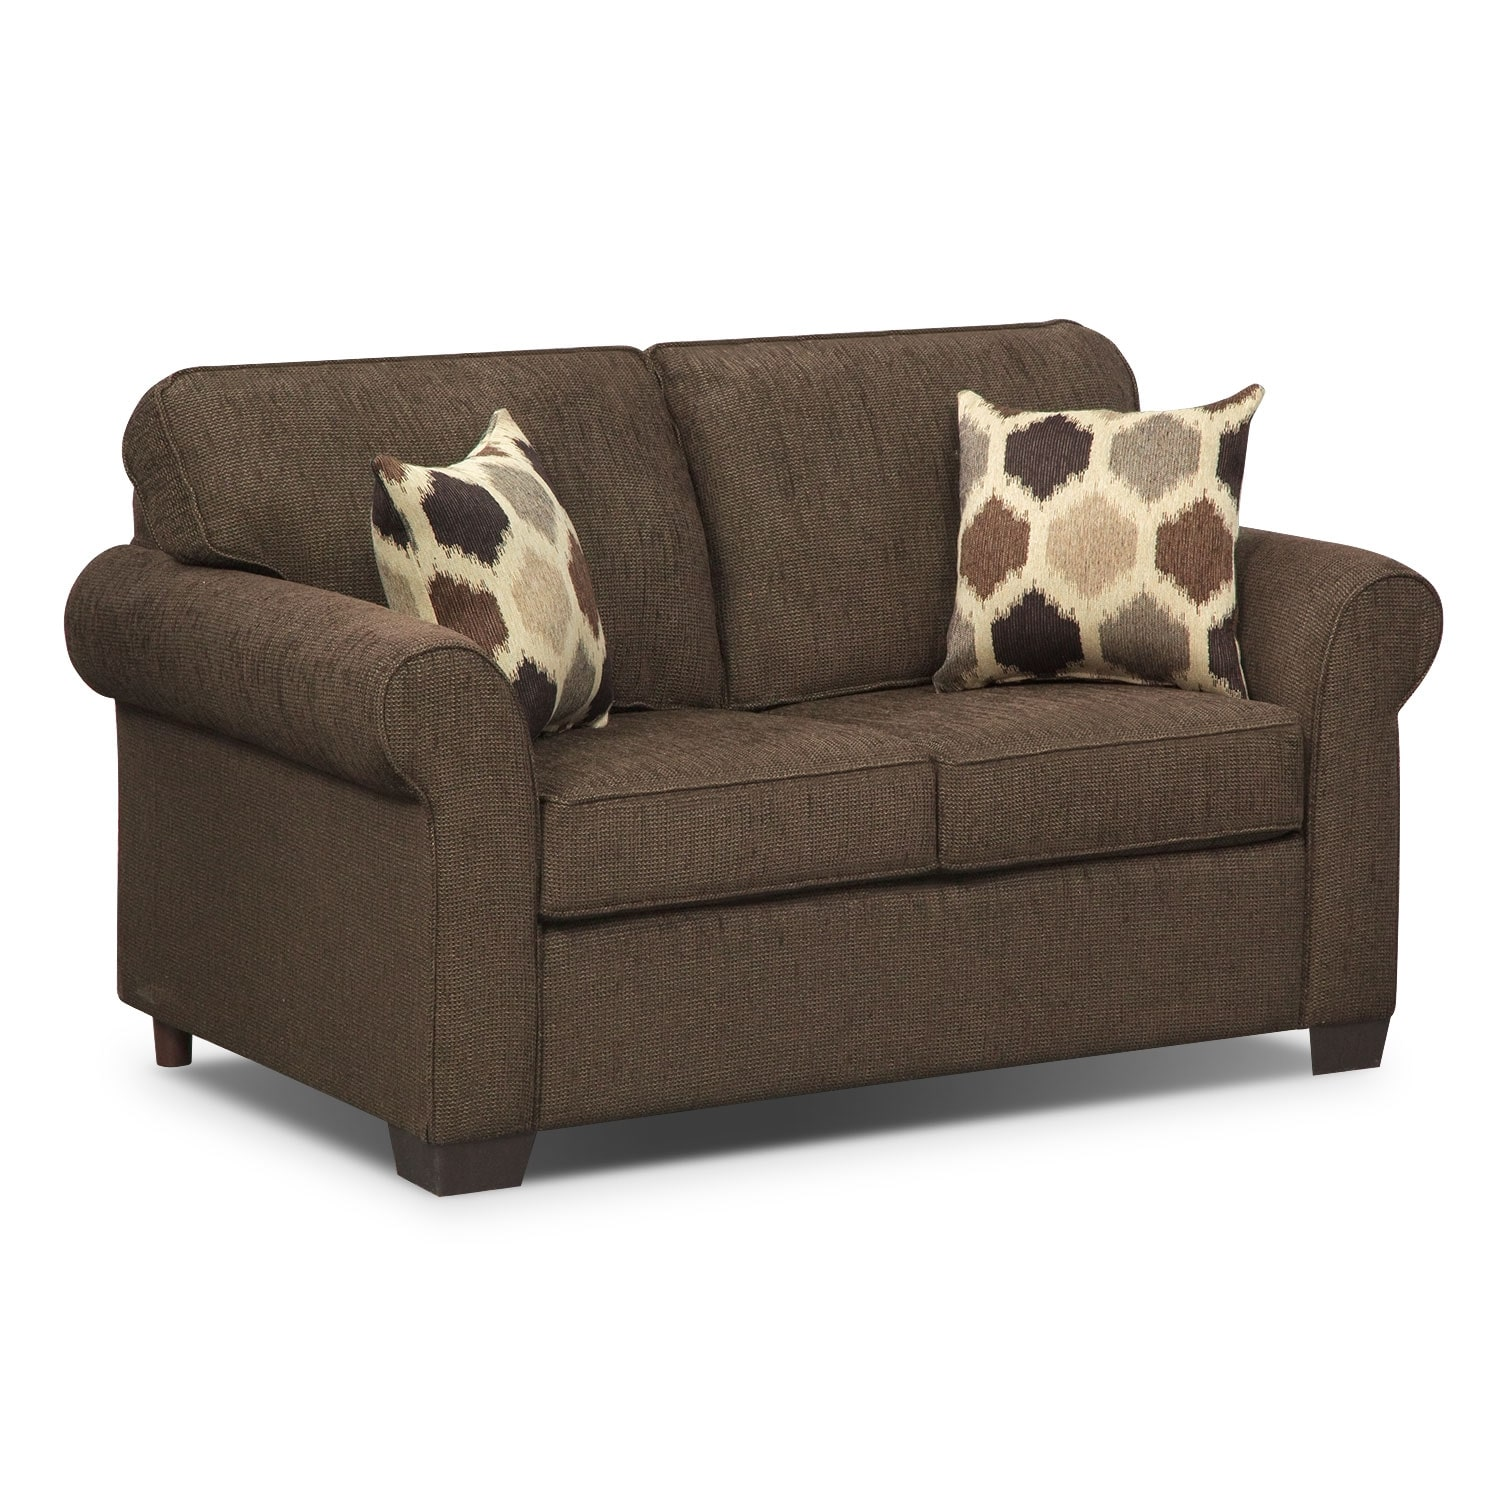 Fletcher Ii Twin Memory Foam Sleeper Sofa American